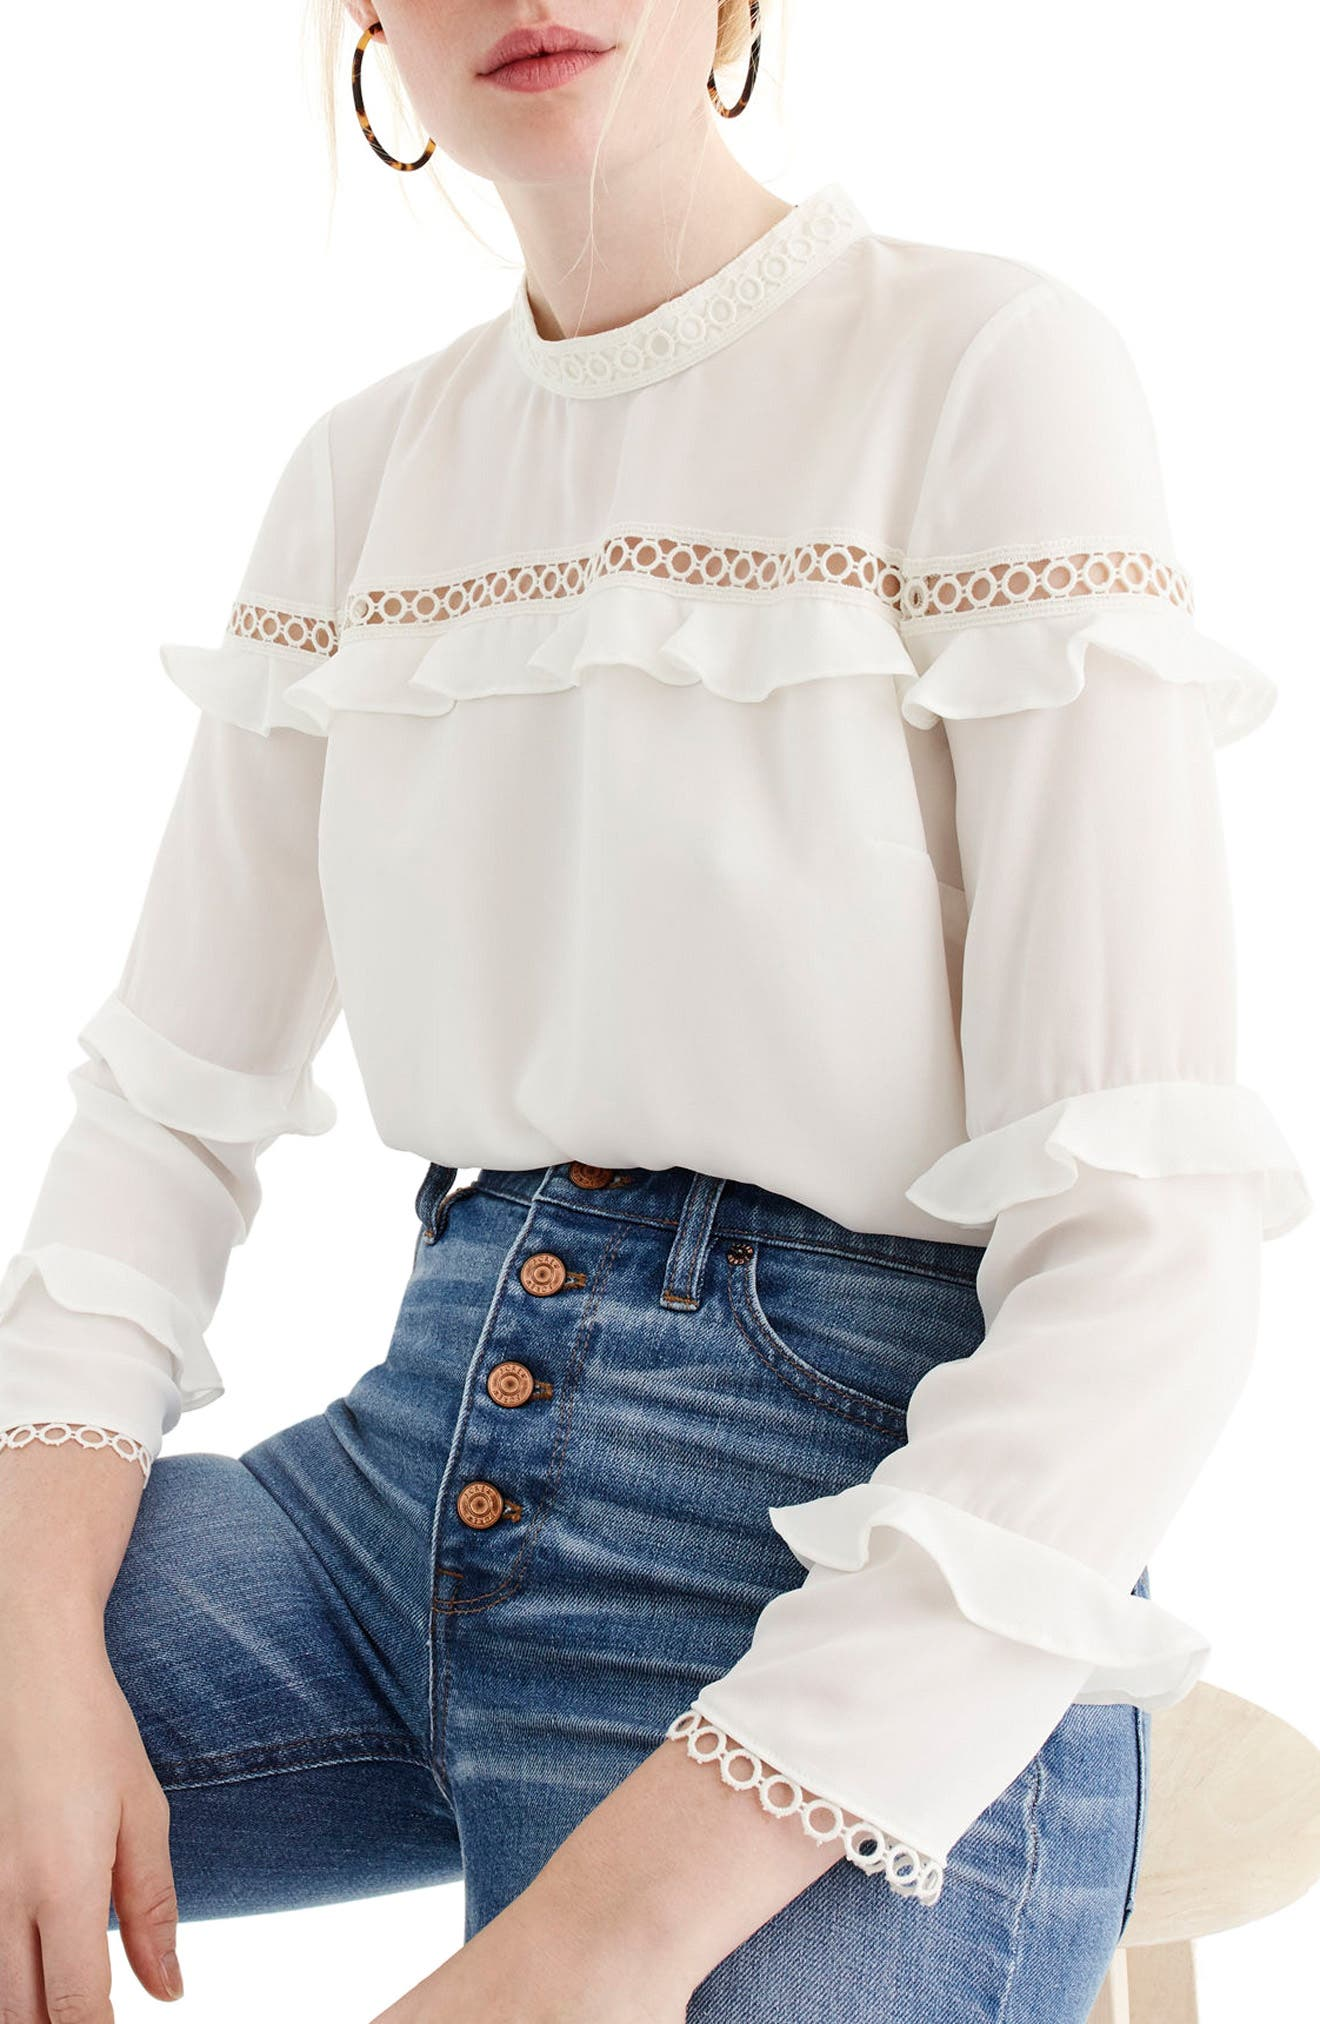 Main Image - J.Crew Tiered Ruffle Top with Scalloped Lace Trim